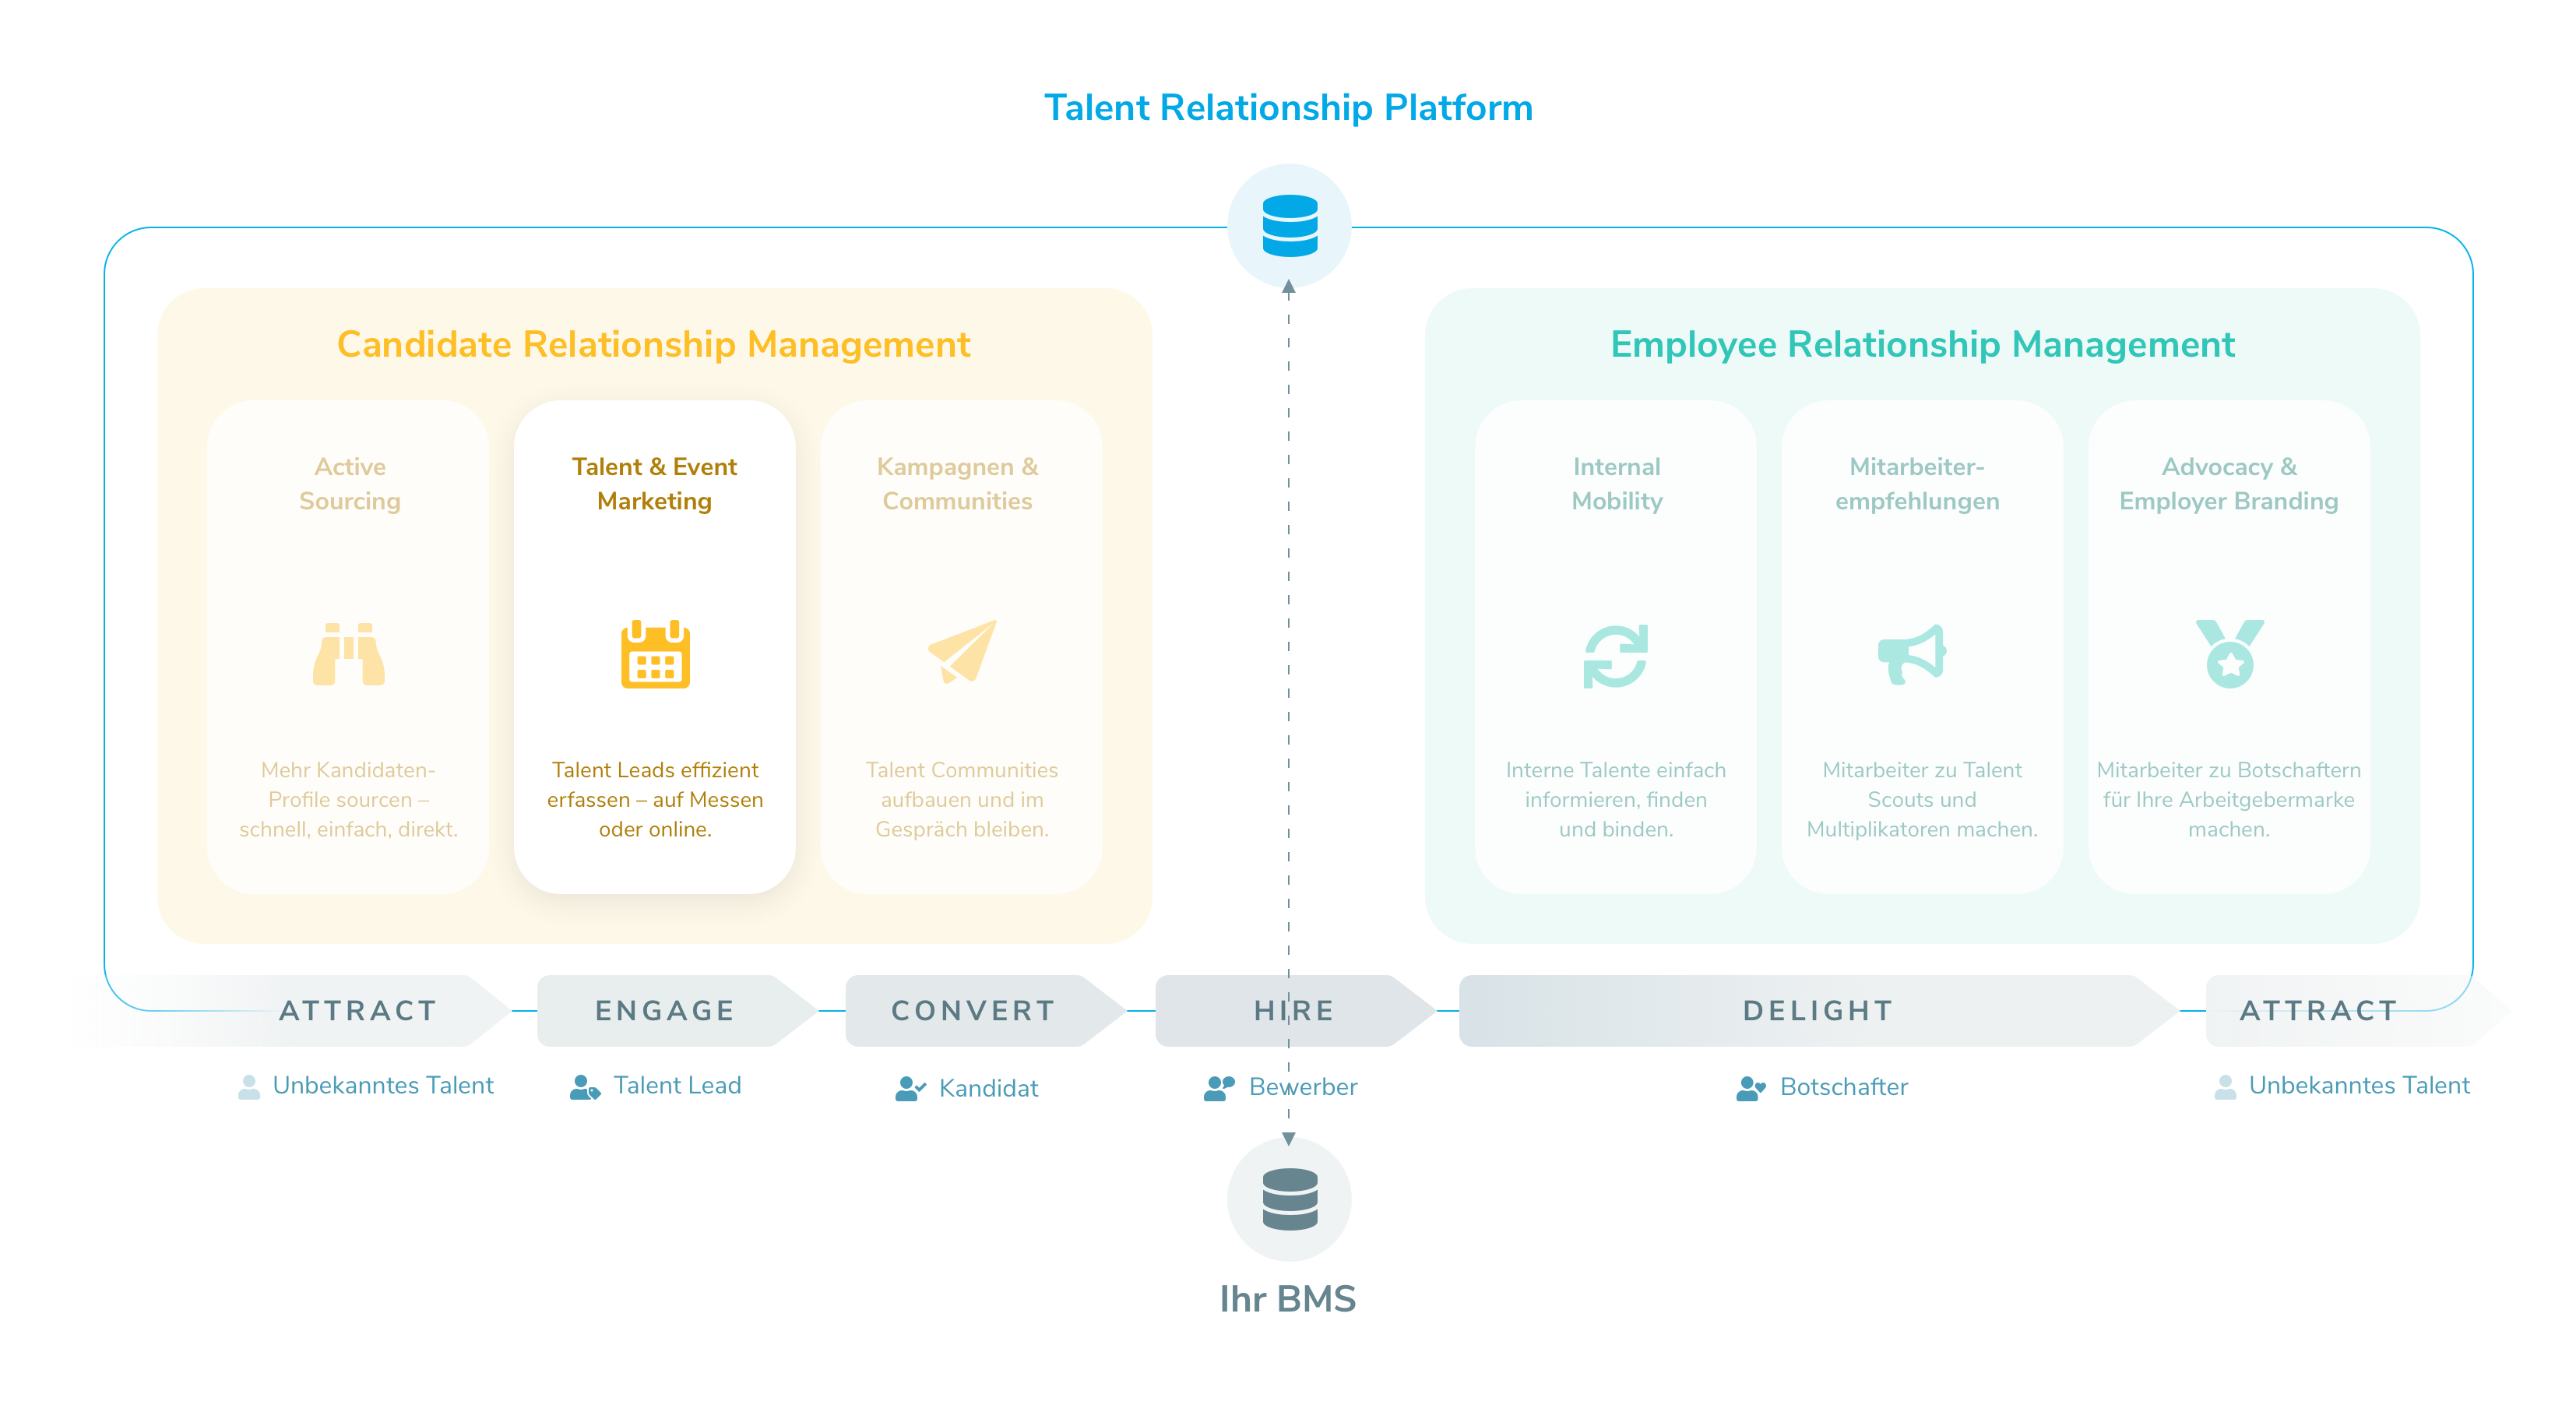 Talentry Talent Relationship Management - Candidate Relationship Management - Talent & Event Marketing